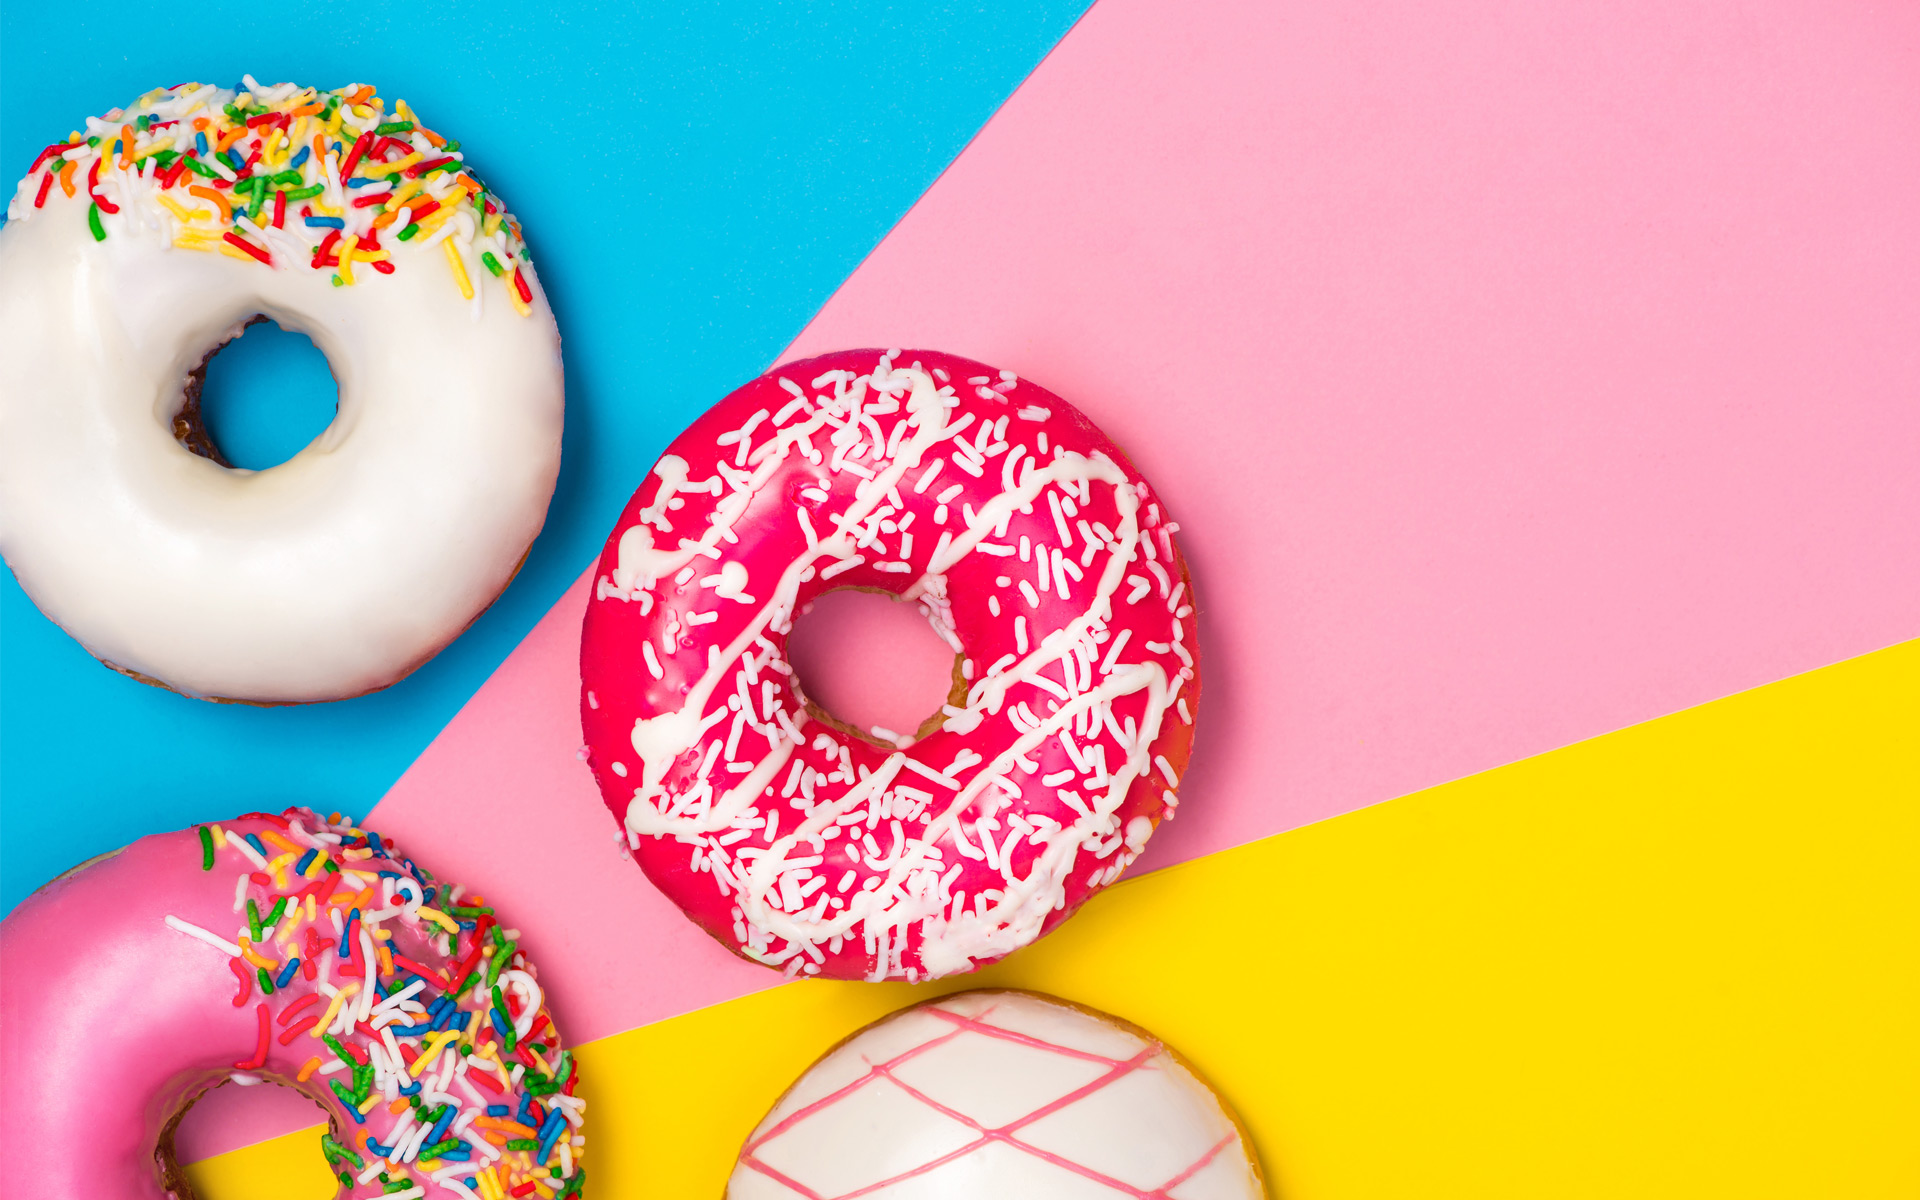 The colorful donuts…